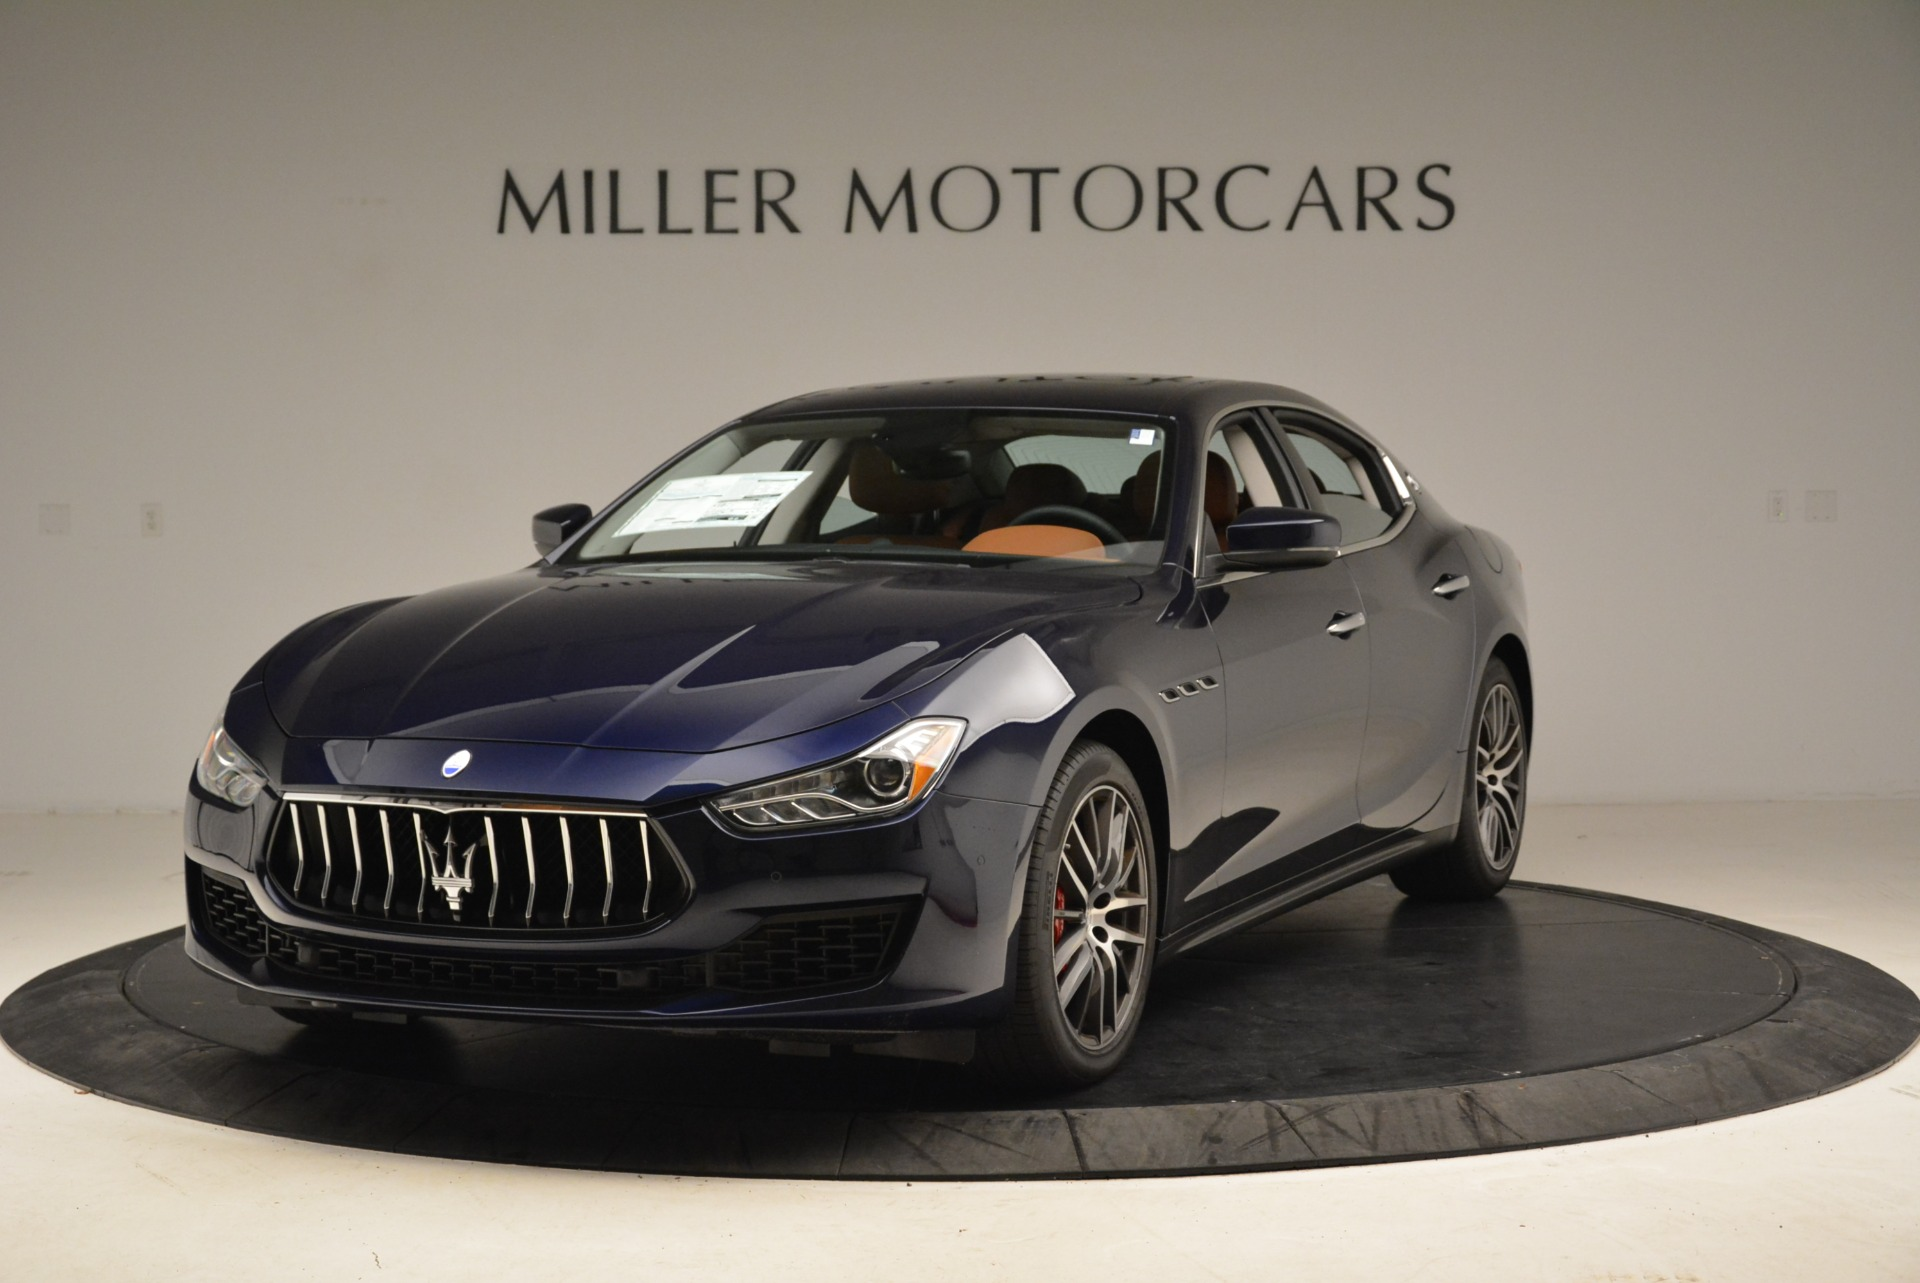 New 2018 Maserati Ghibli S Q4 For Sale In Westport, CT 1800_main